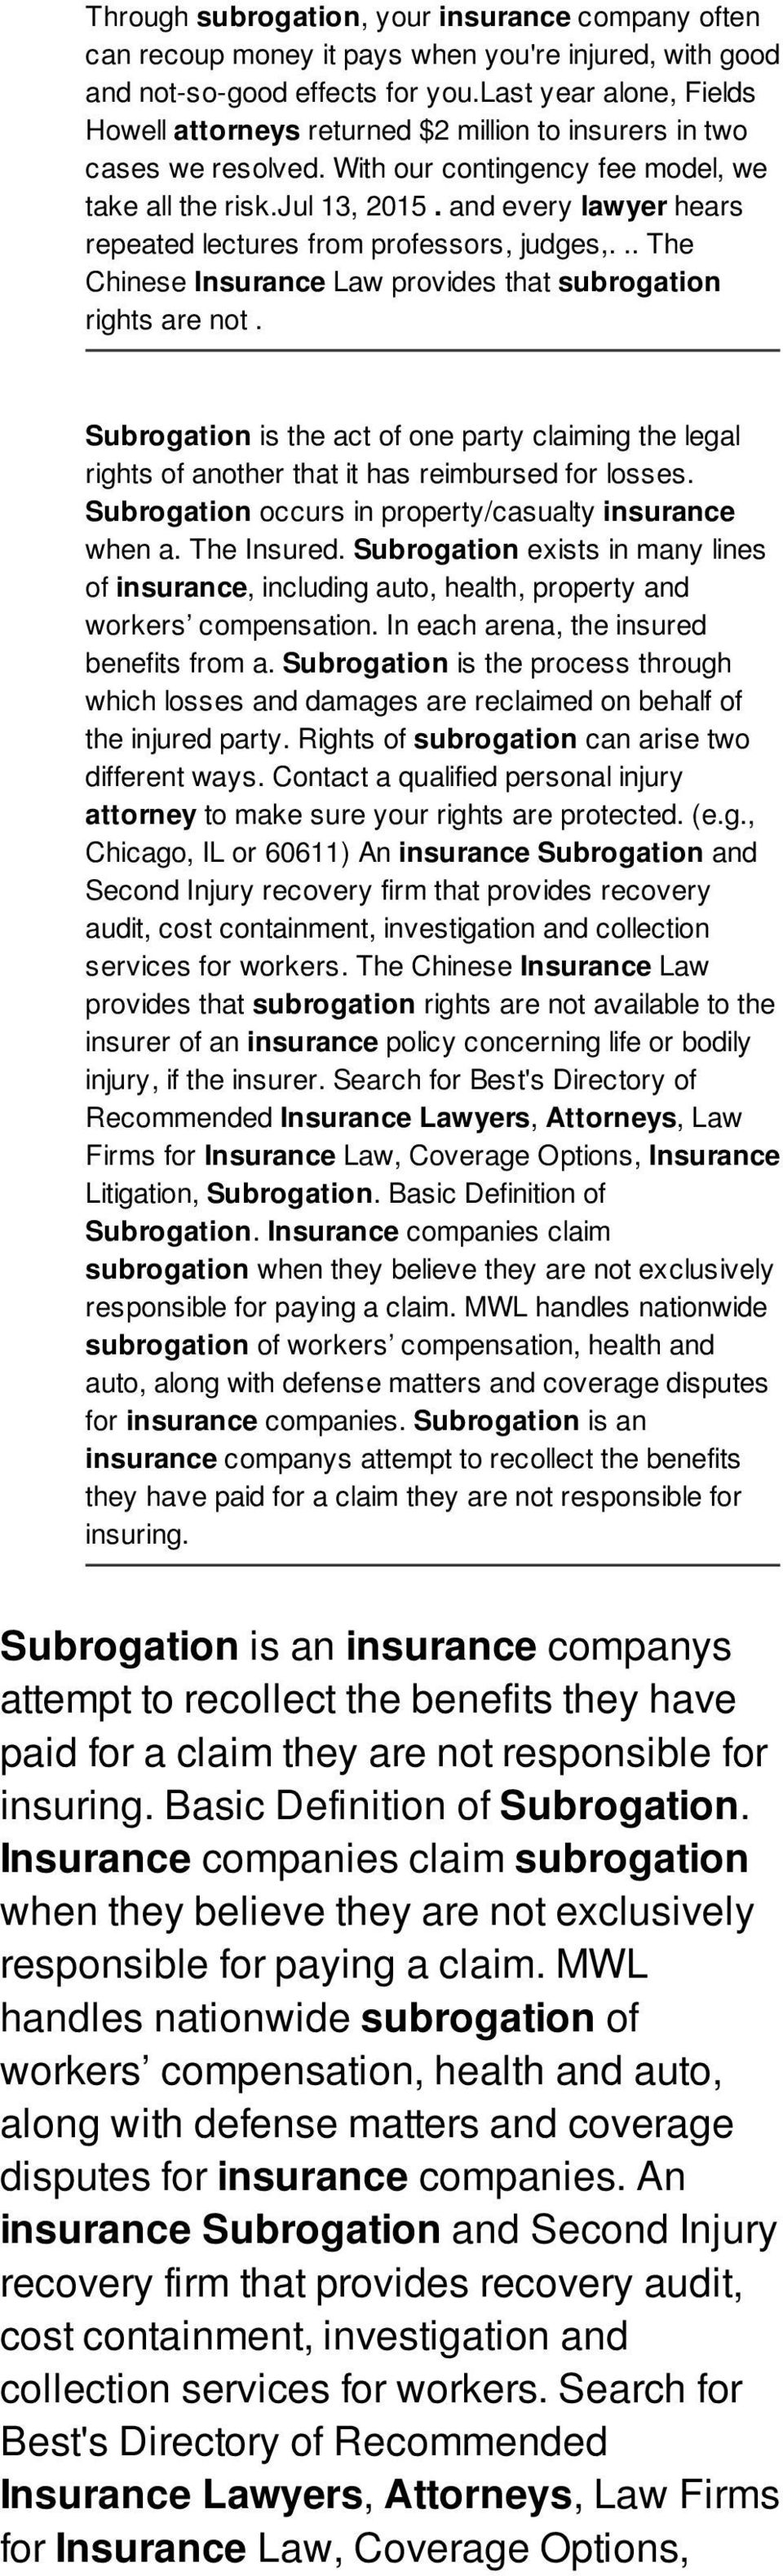 and every lawyer hears repeated lectures from professors, judges,... The Chinese Insurance Law provides that subrogation rights are not.